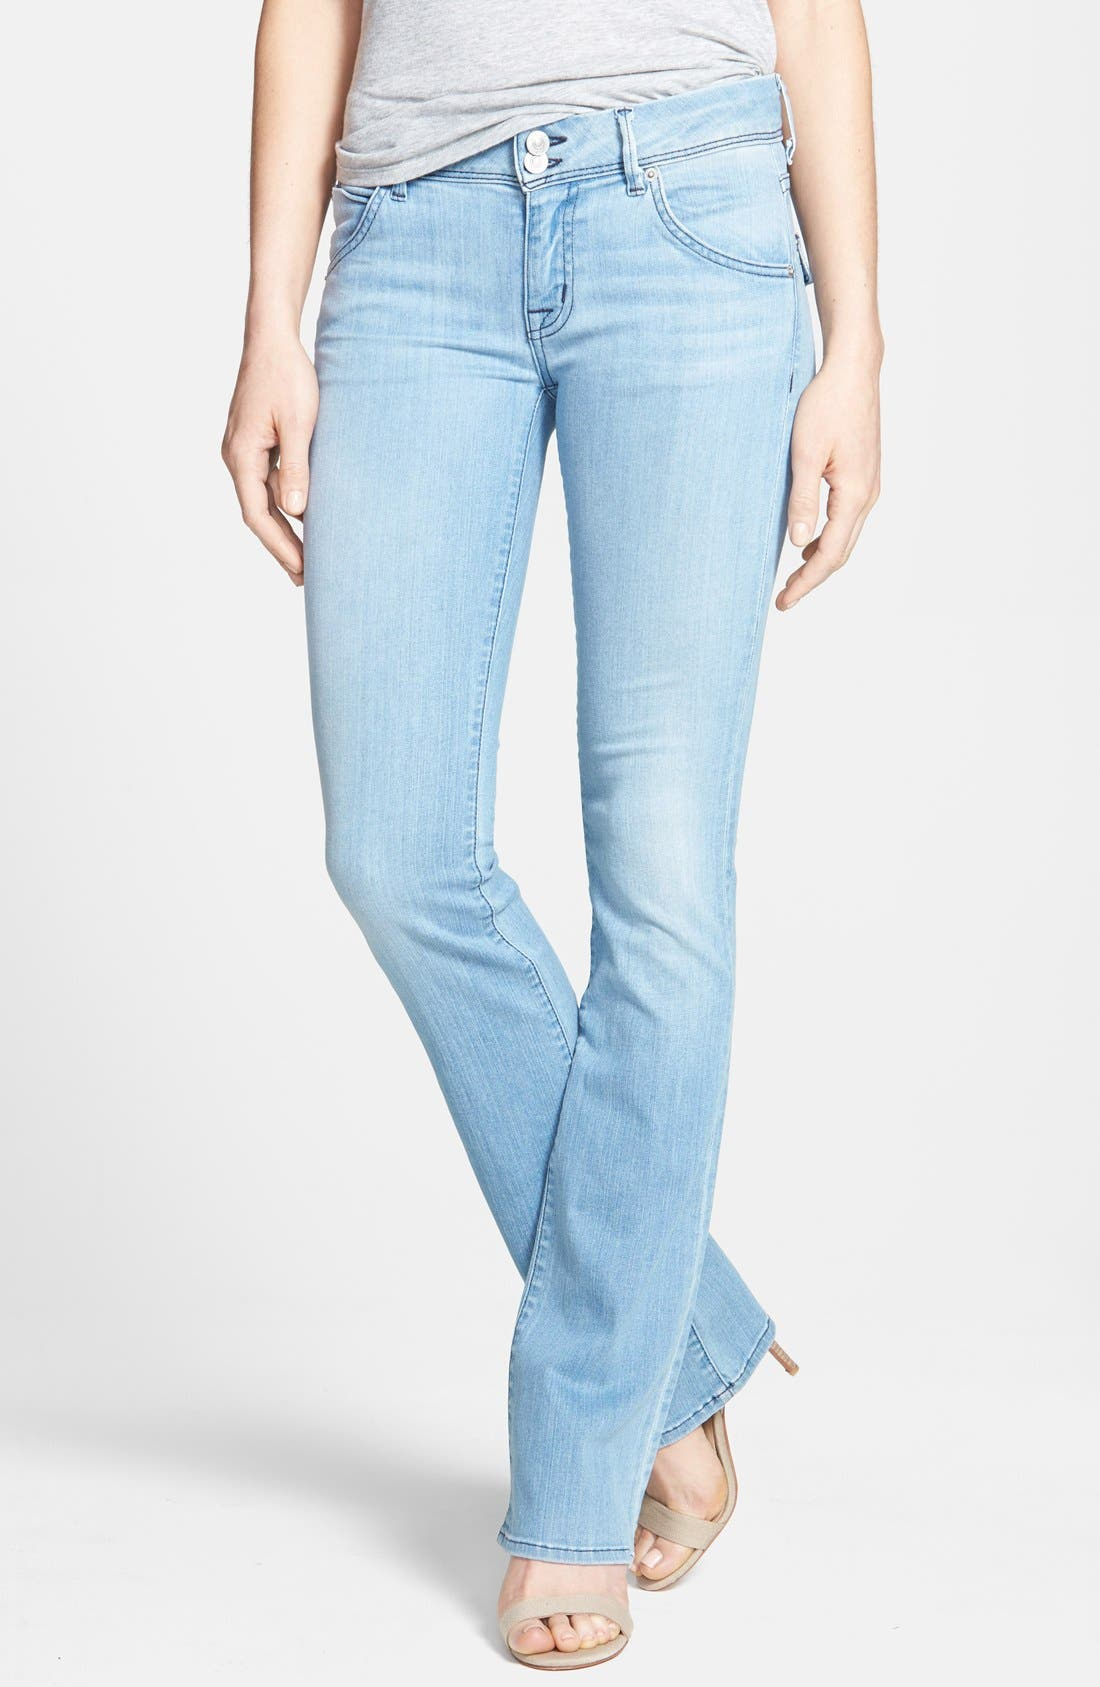 Alternate Image 1 Selected - Hudson Jeans 'Beth' Baby Bootcut Jeans (Foley)